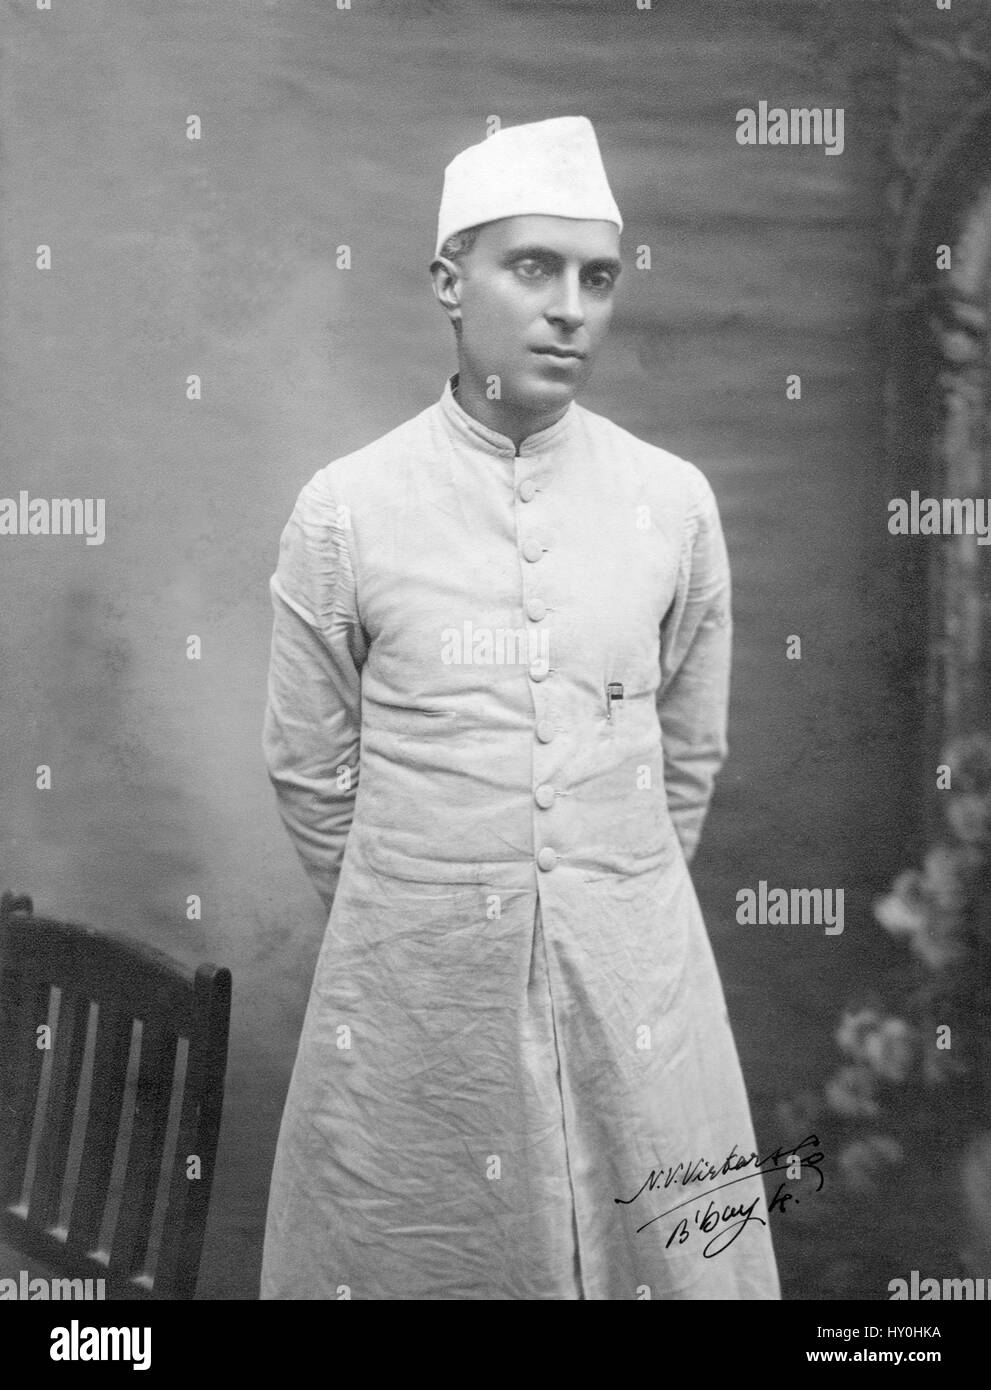 Indian first prime minister, jawaharlal nehru, india, asia, 1927 - Stock Image